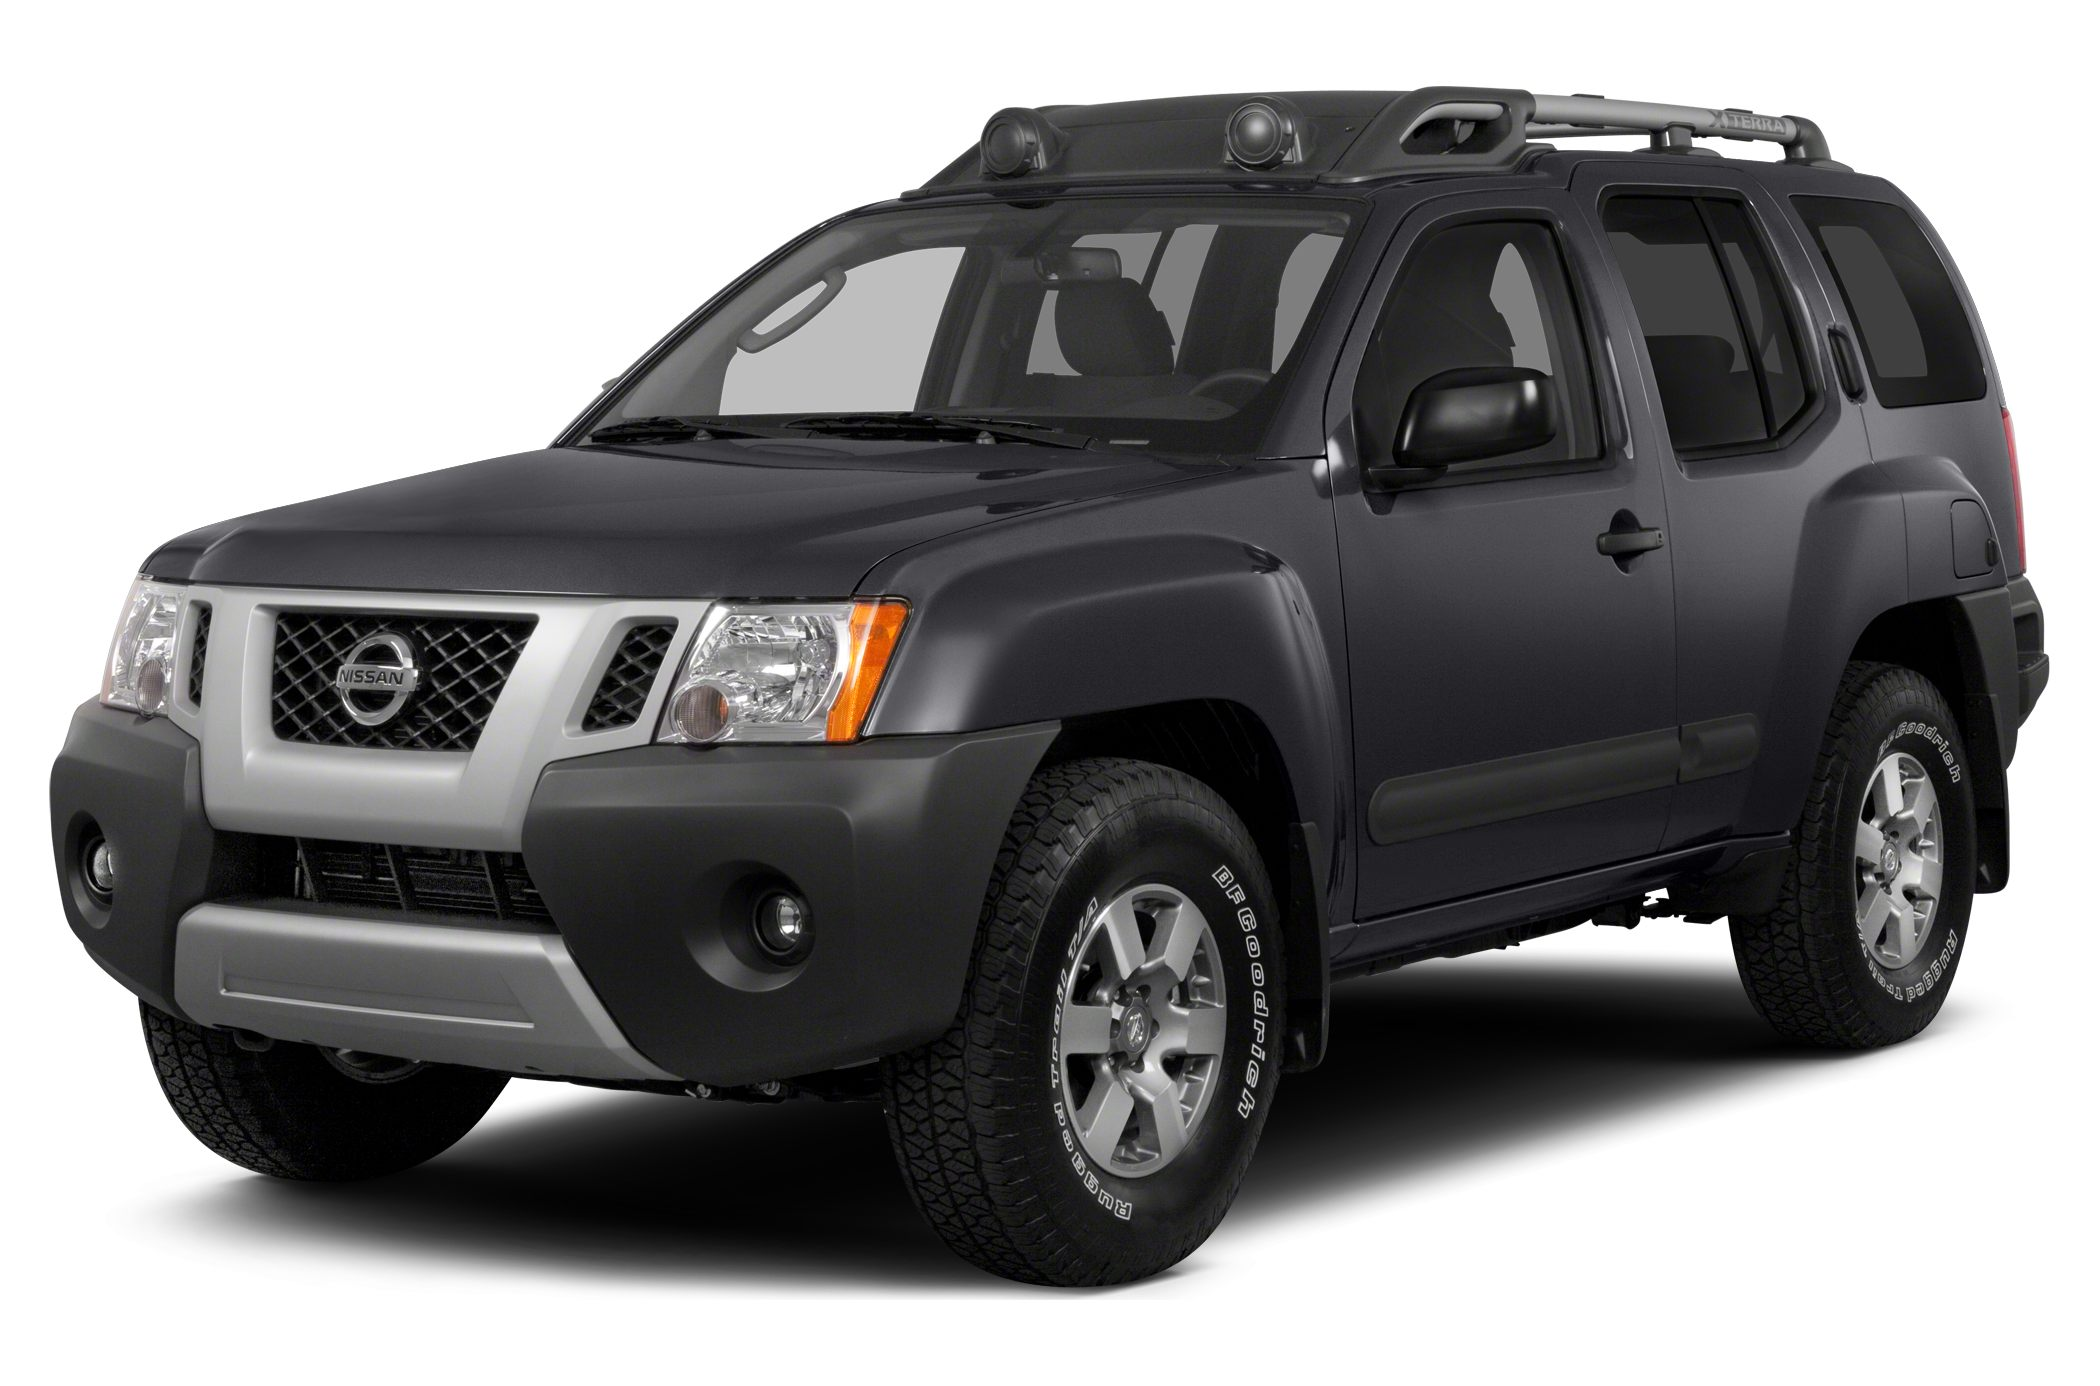 nissan xterra news photos and buying information autoblog. Black Bedroom Furniture Sets. Home Design Ideas